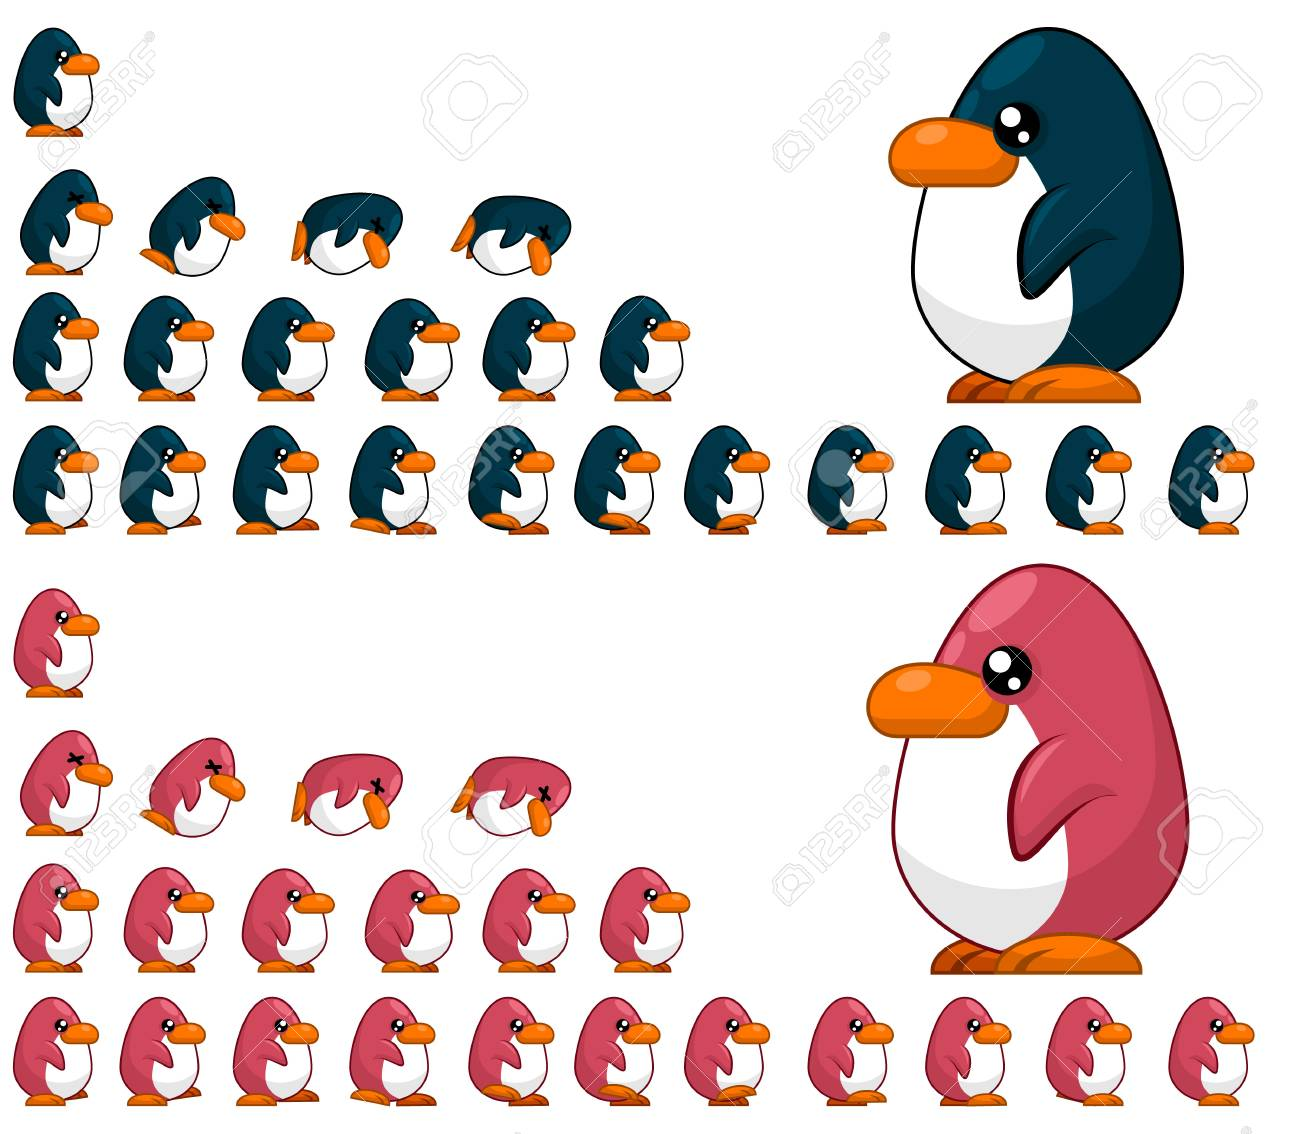 Animated Penguin game characters - 107336453